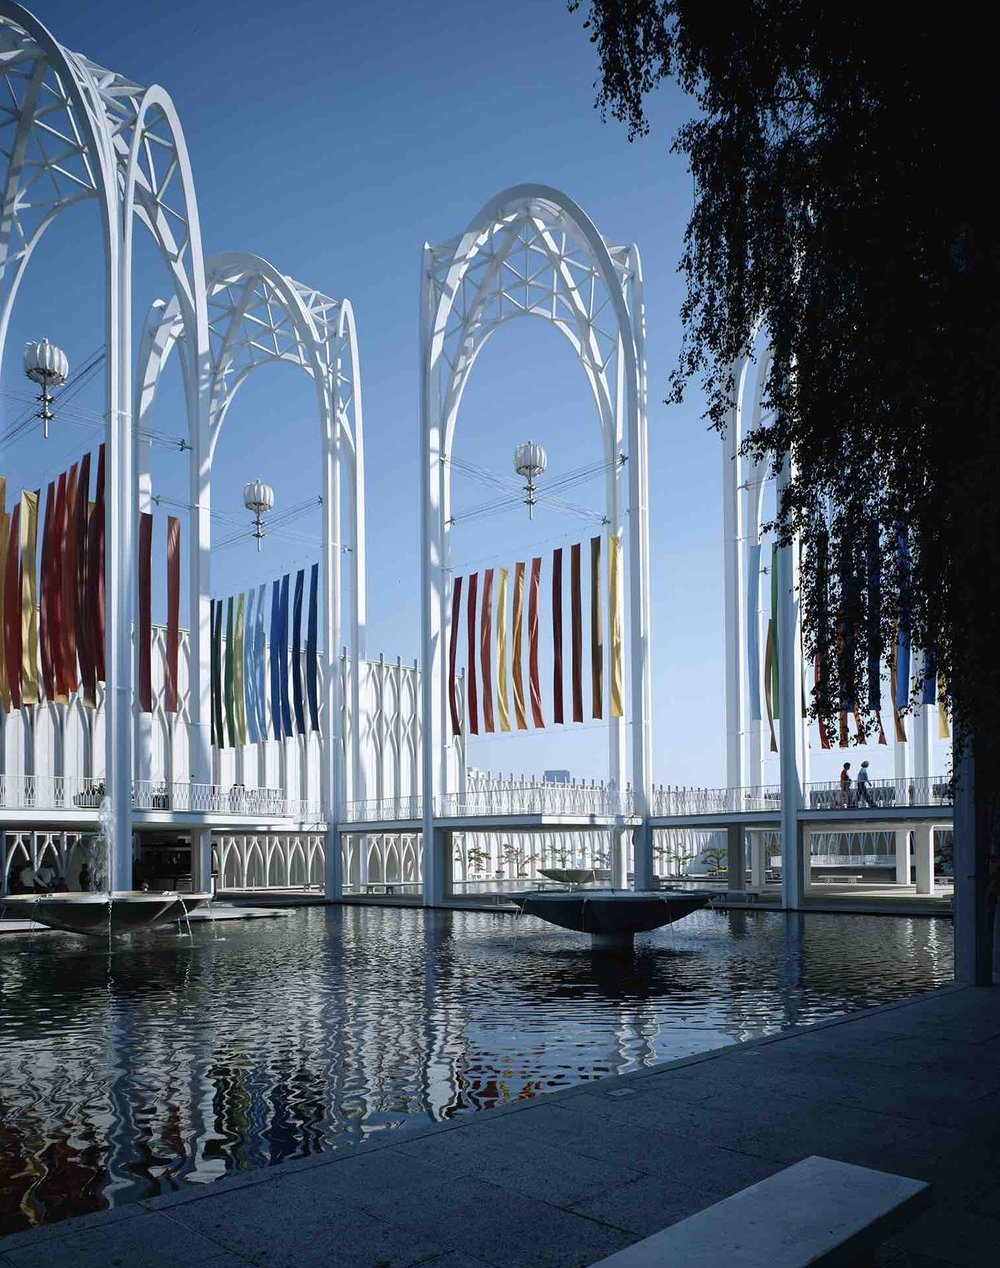 Minoru Yamasaki, World's Fair (Seattle, WA) 1962